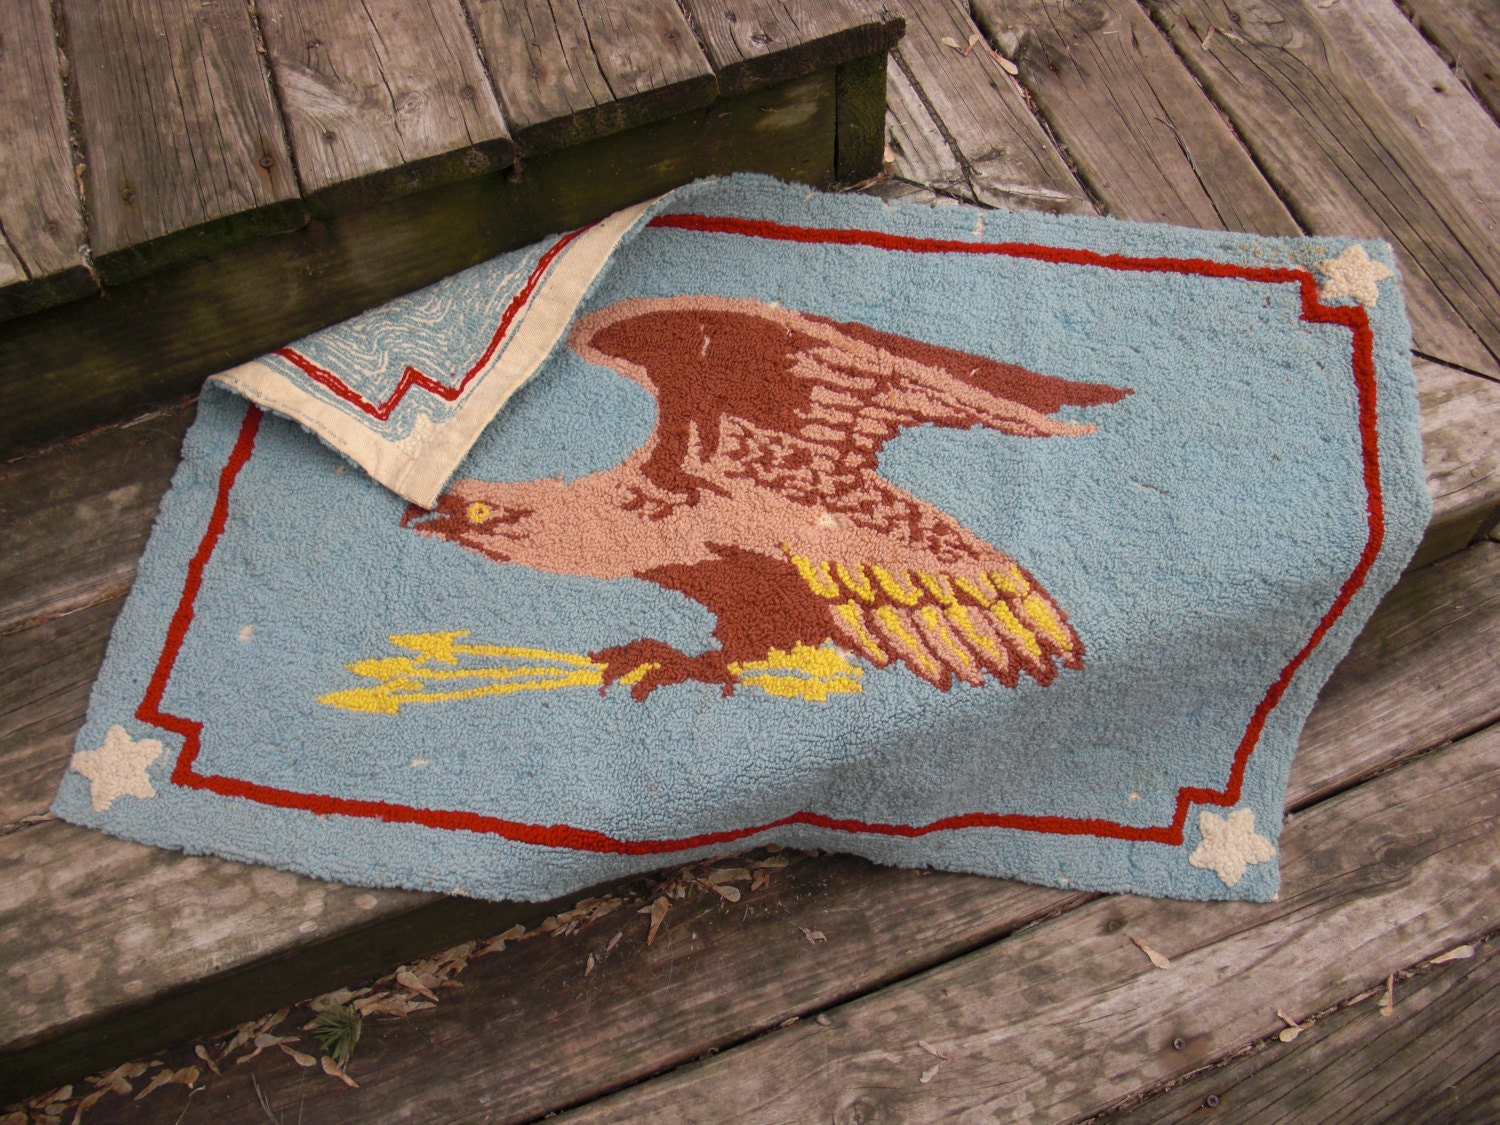 Very Vintage Rug Vintage Wall Decor by NorthboundSalvage on Etsy